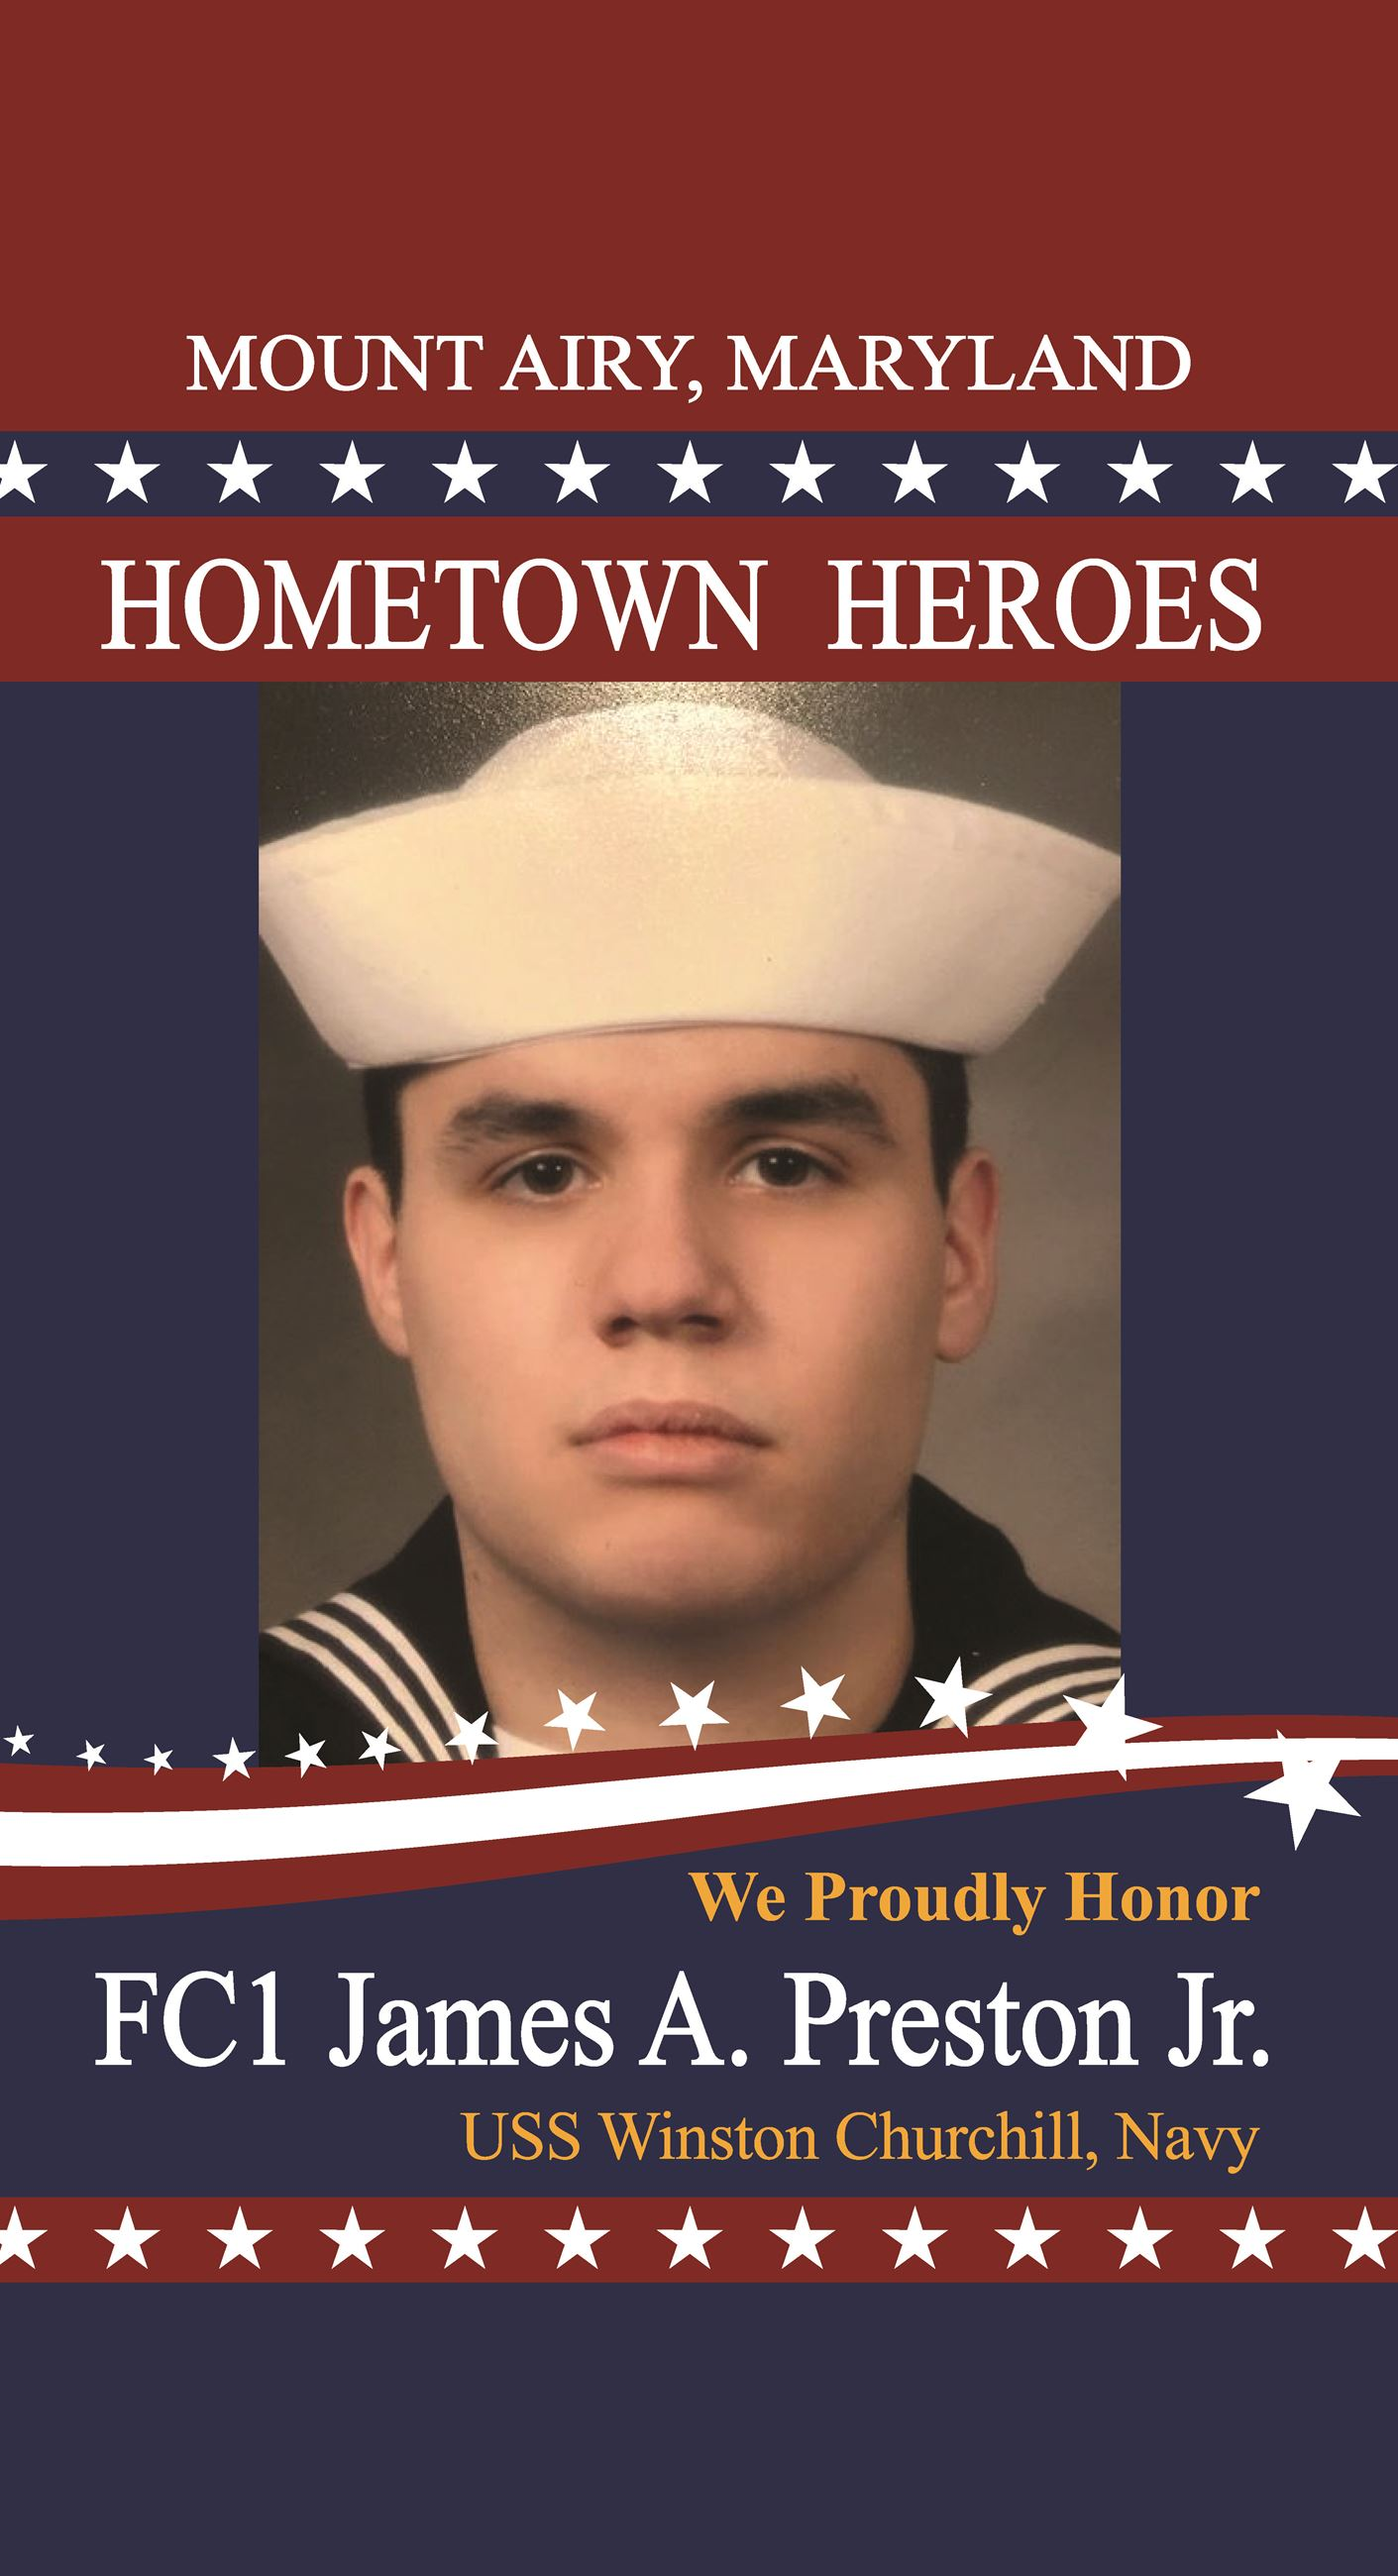 JamesAPrestonJr_MtAiryHeroes-Flag-24x44-Proof001